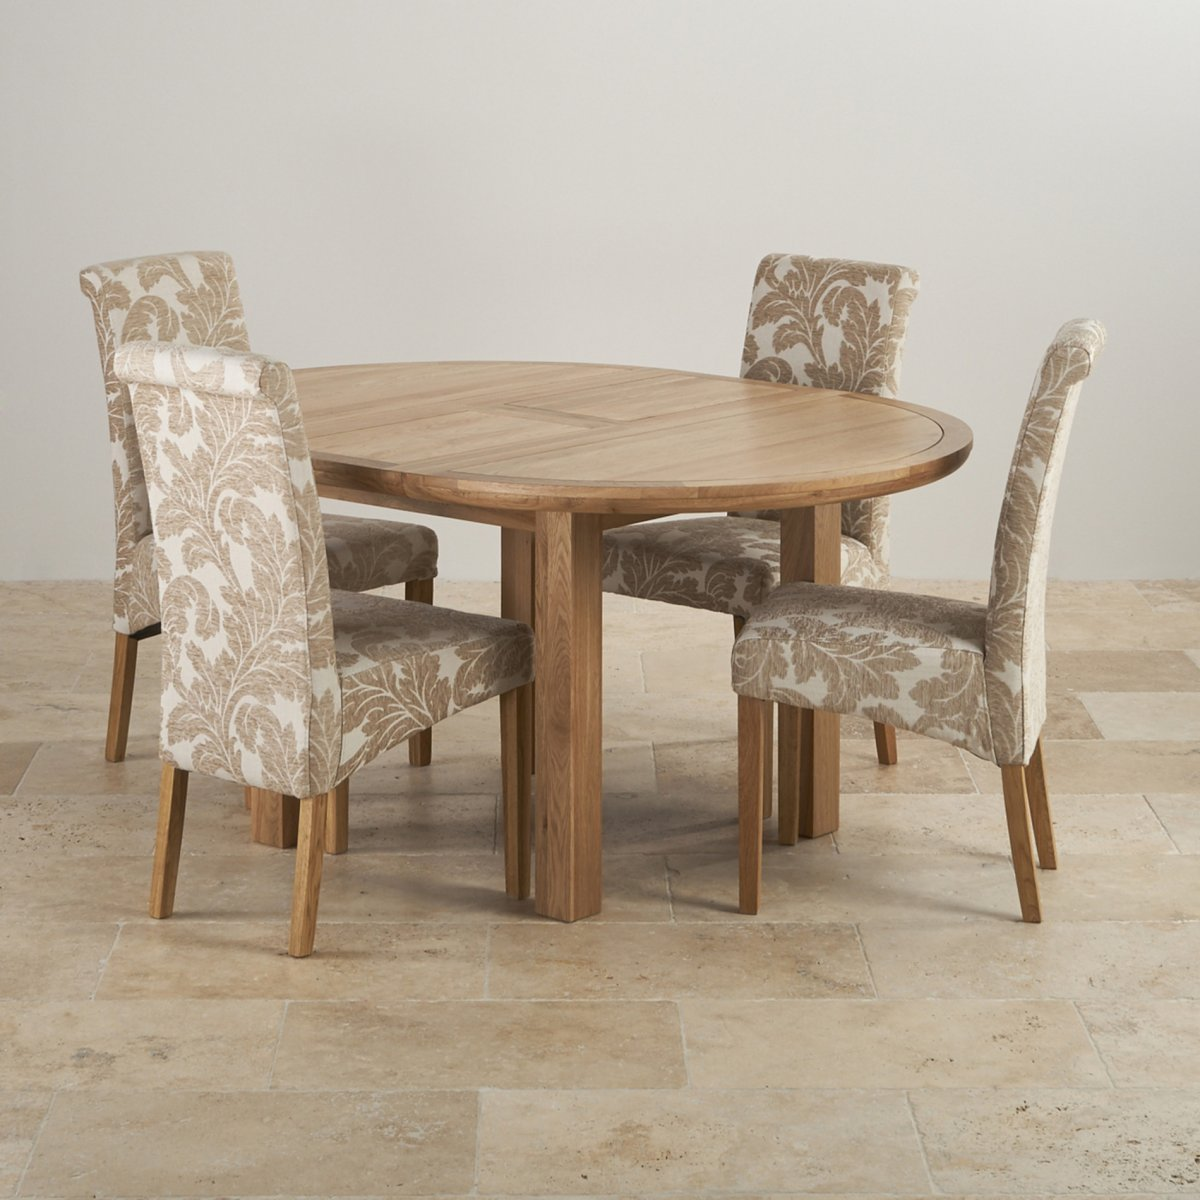 Knightsbridge oak dining set round extending table 4 for Round dining table for 4